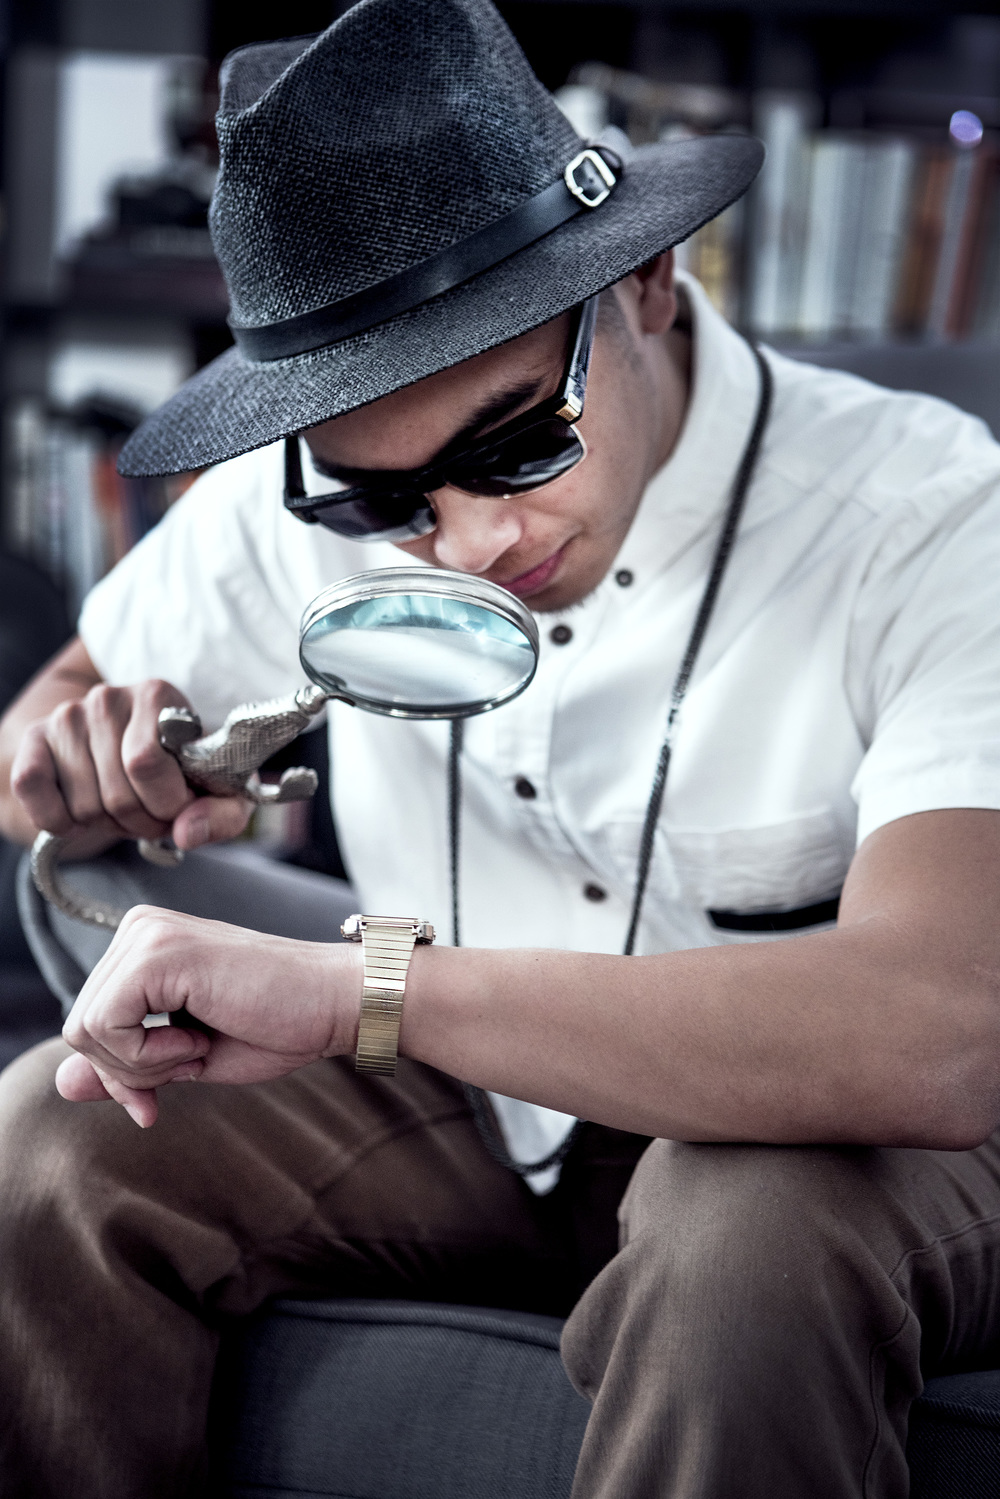 JUSTFENG JFOOTD JUSTFENGPHOTO CHAD POREOTICS EDITORIAL FASHION OOTDMENS